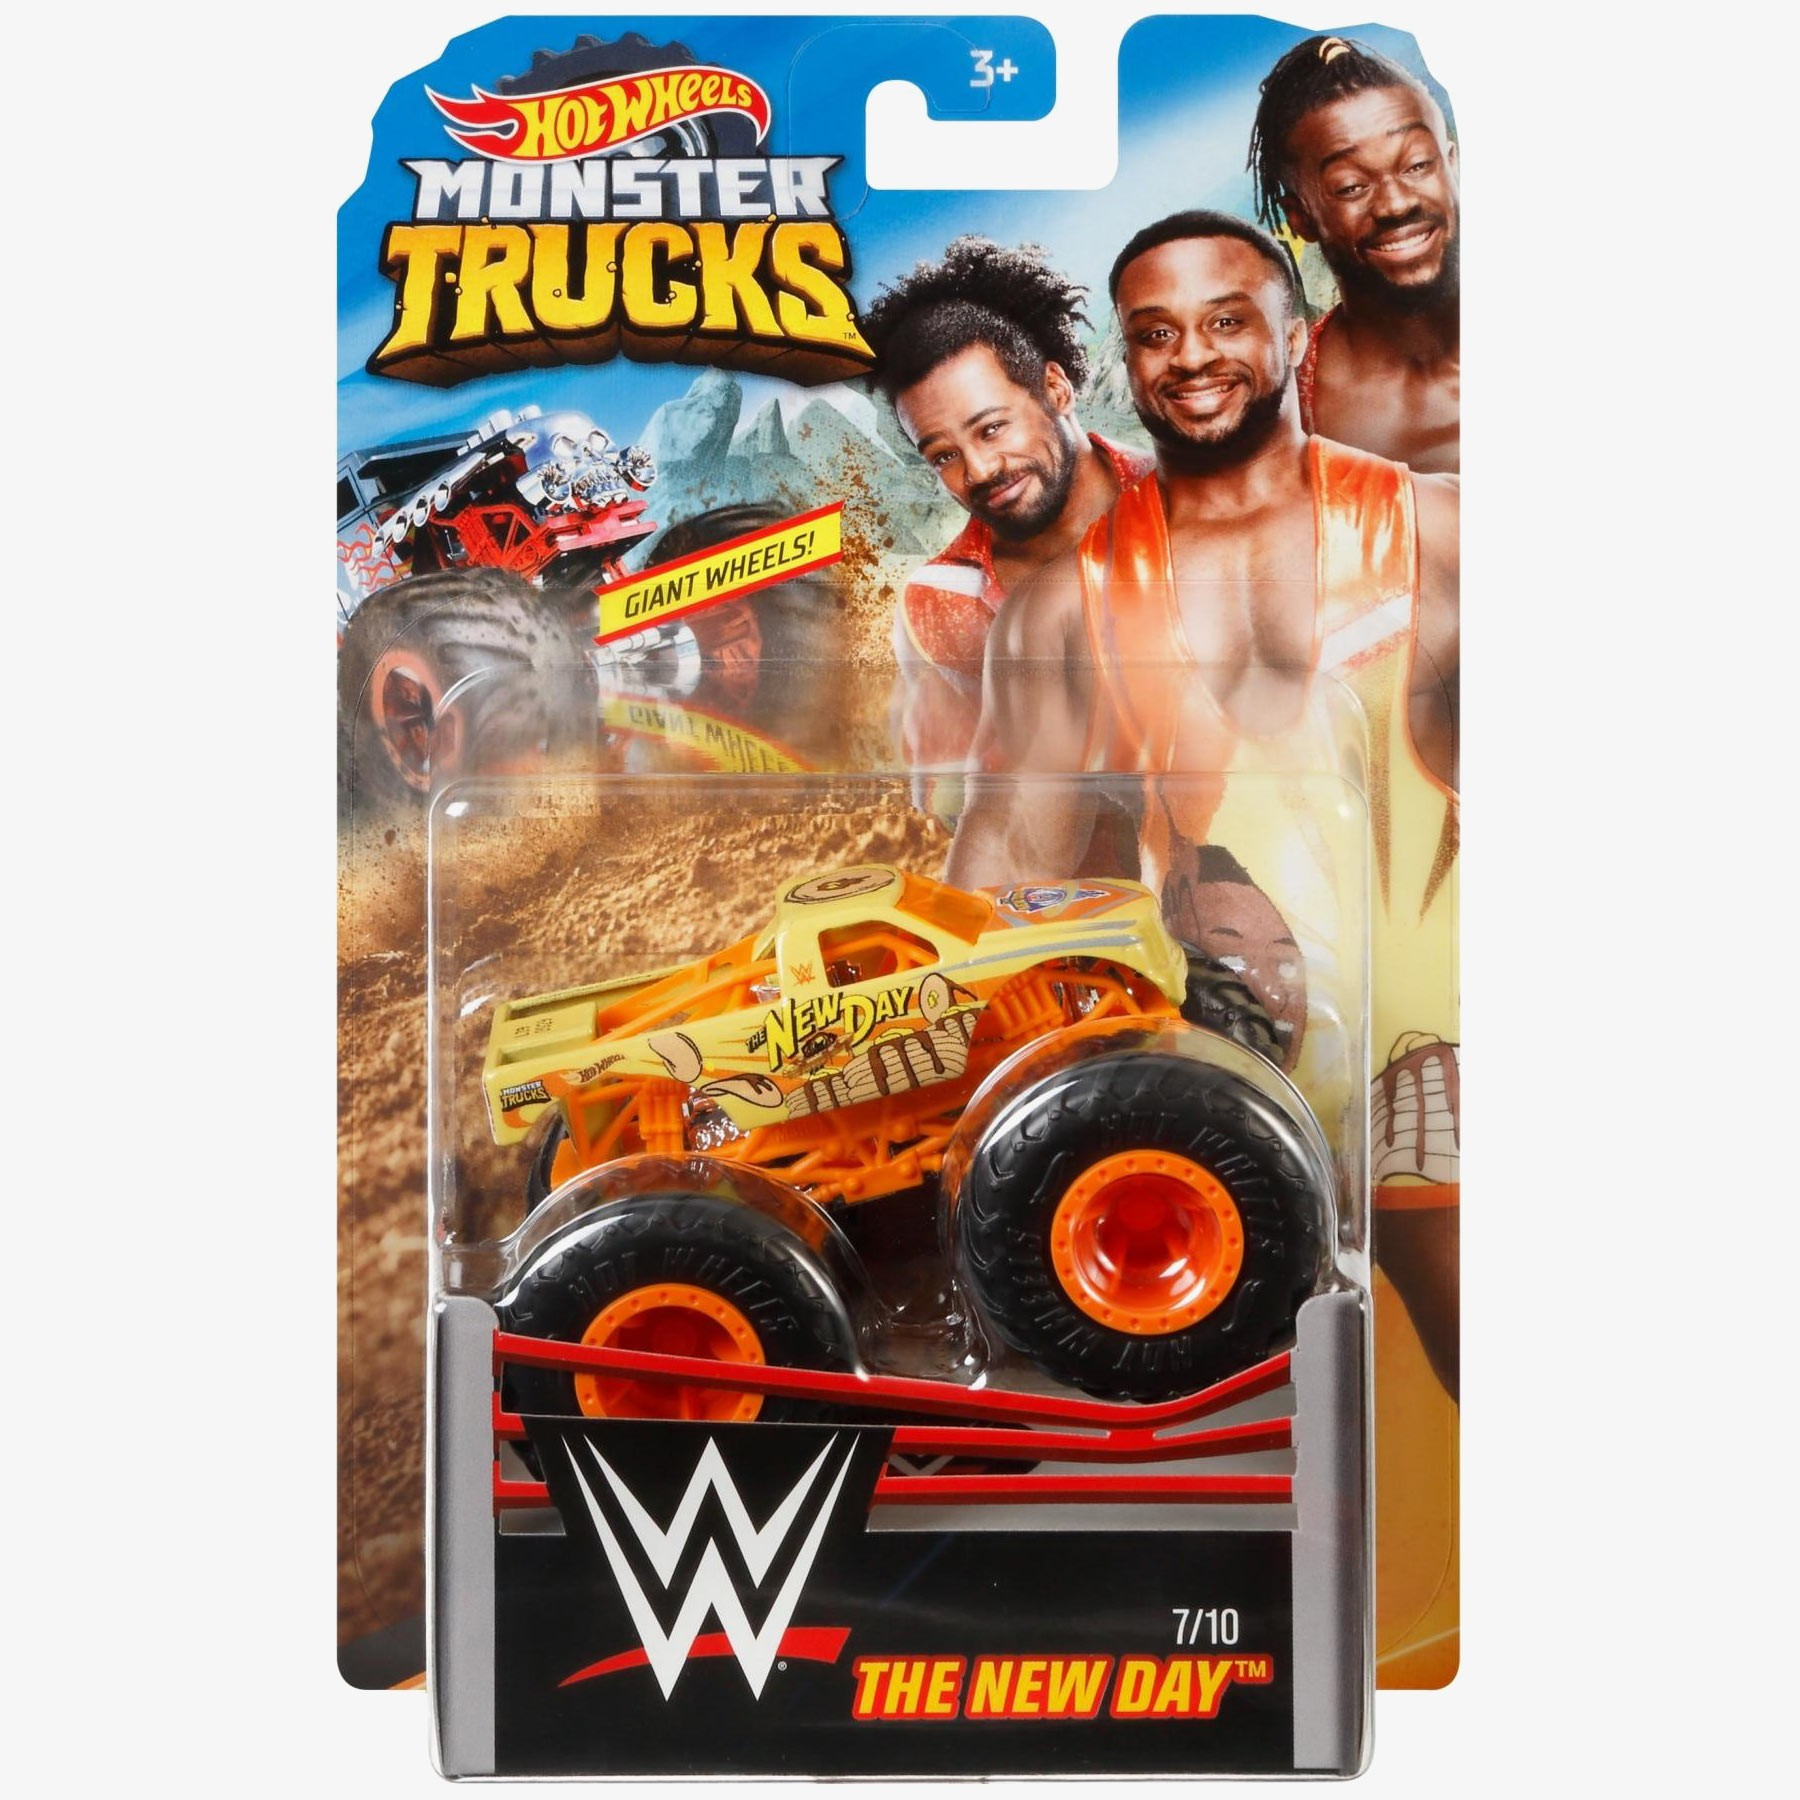 The New Day Hot Wheels Monster Trucks Wwe Die Cast Collection